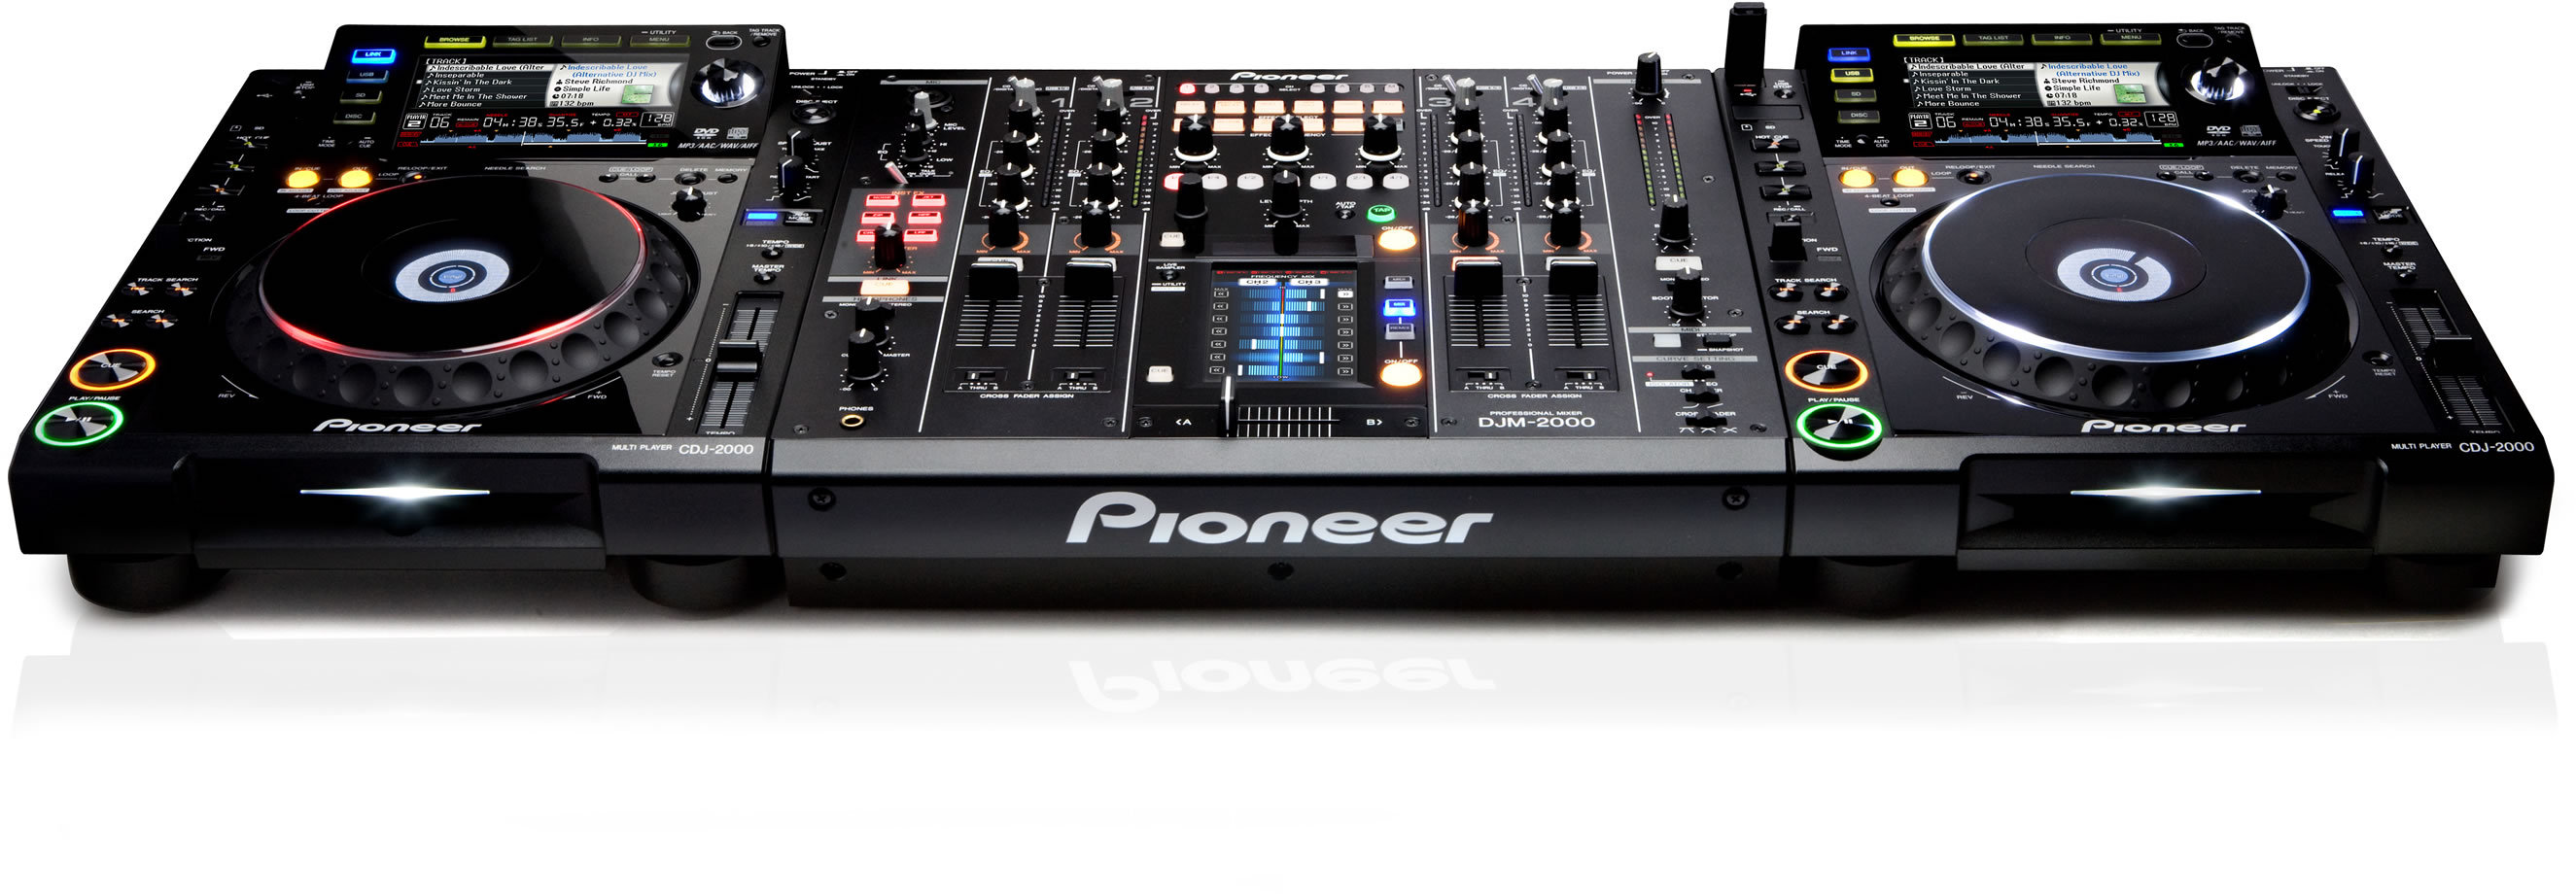 Images of Pioneer | 2650x920